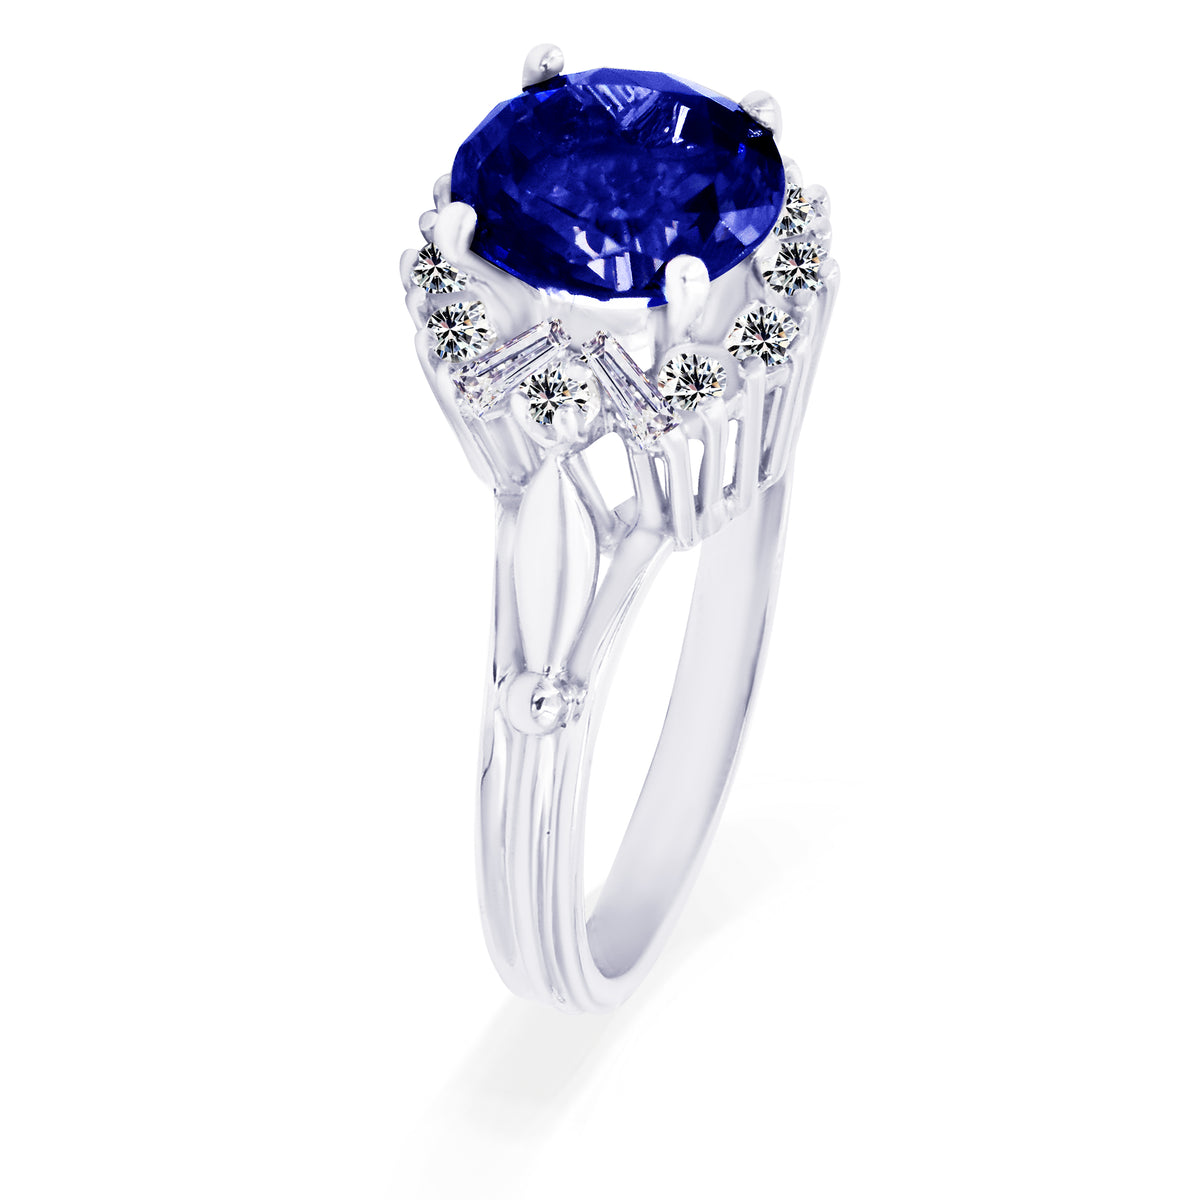 20K White Gold Iolite and Diamond Ring